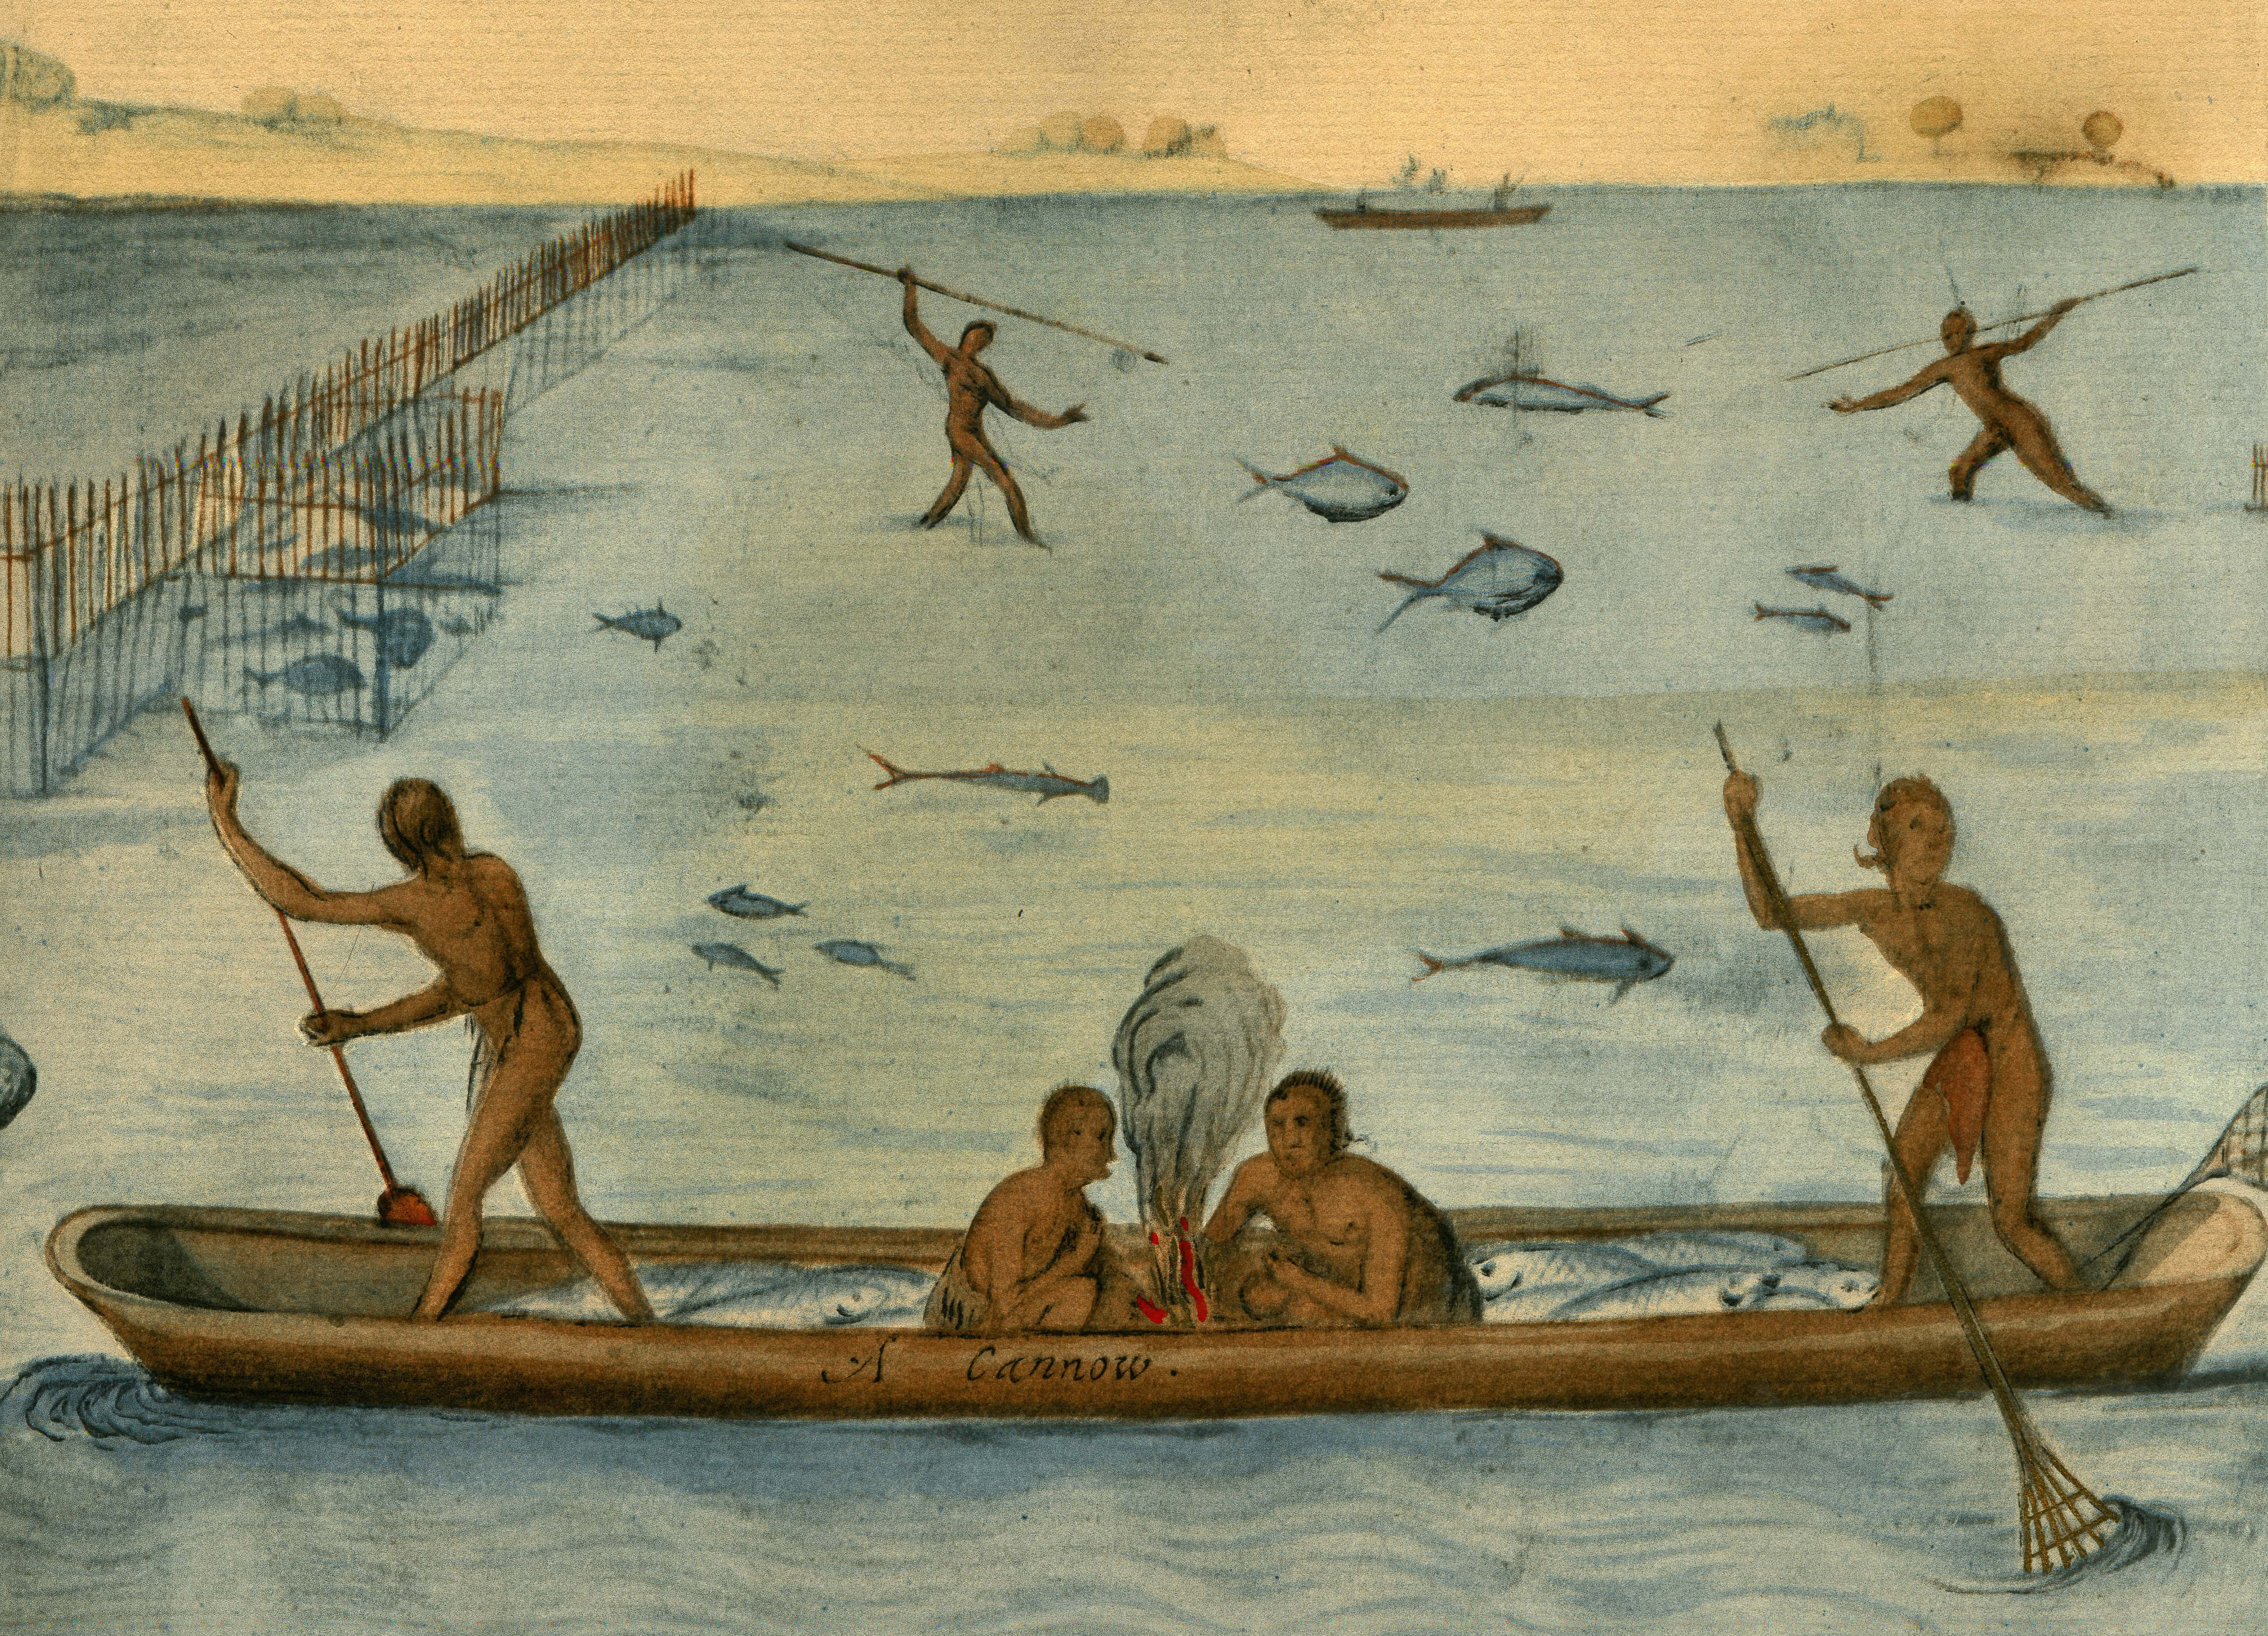 John White watercolor image of American Indians fishing John White watercolor image of American Indians fishing